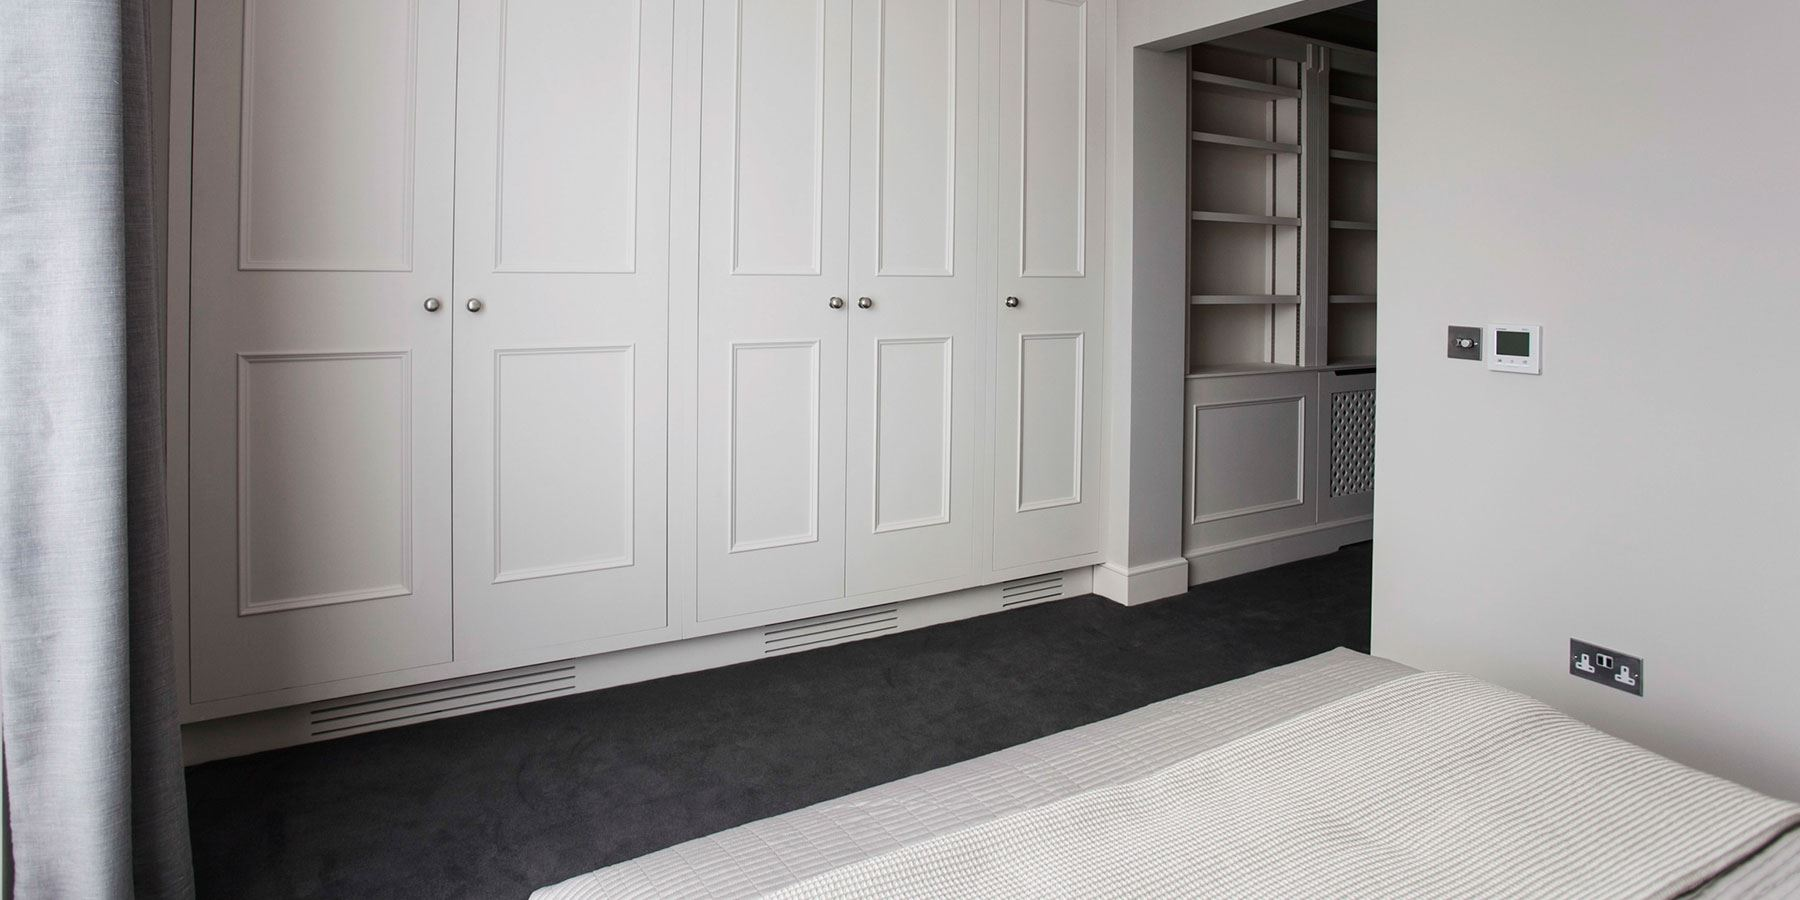 Bespoke Designer Bedroom Storage - Burlanes handmade fitted bedroom wardrobes and storage solutions.